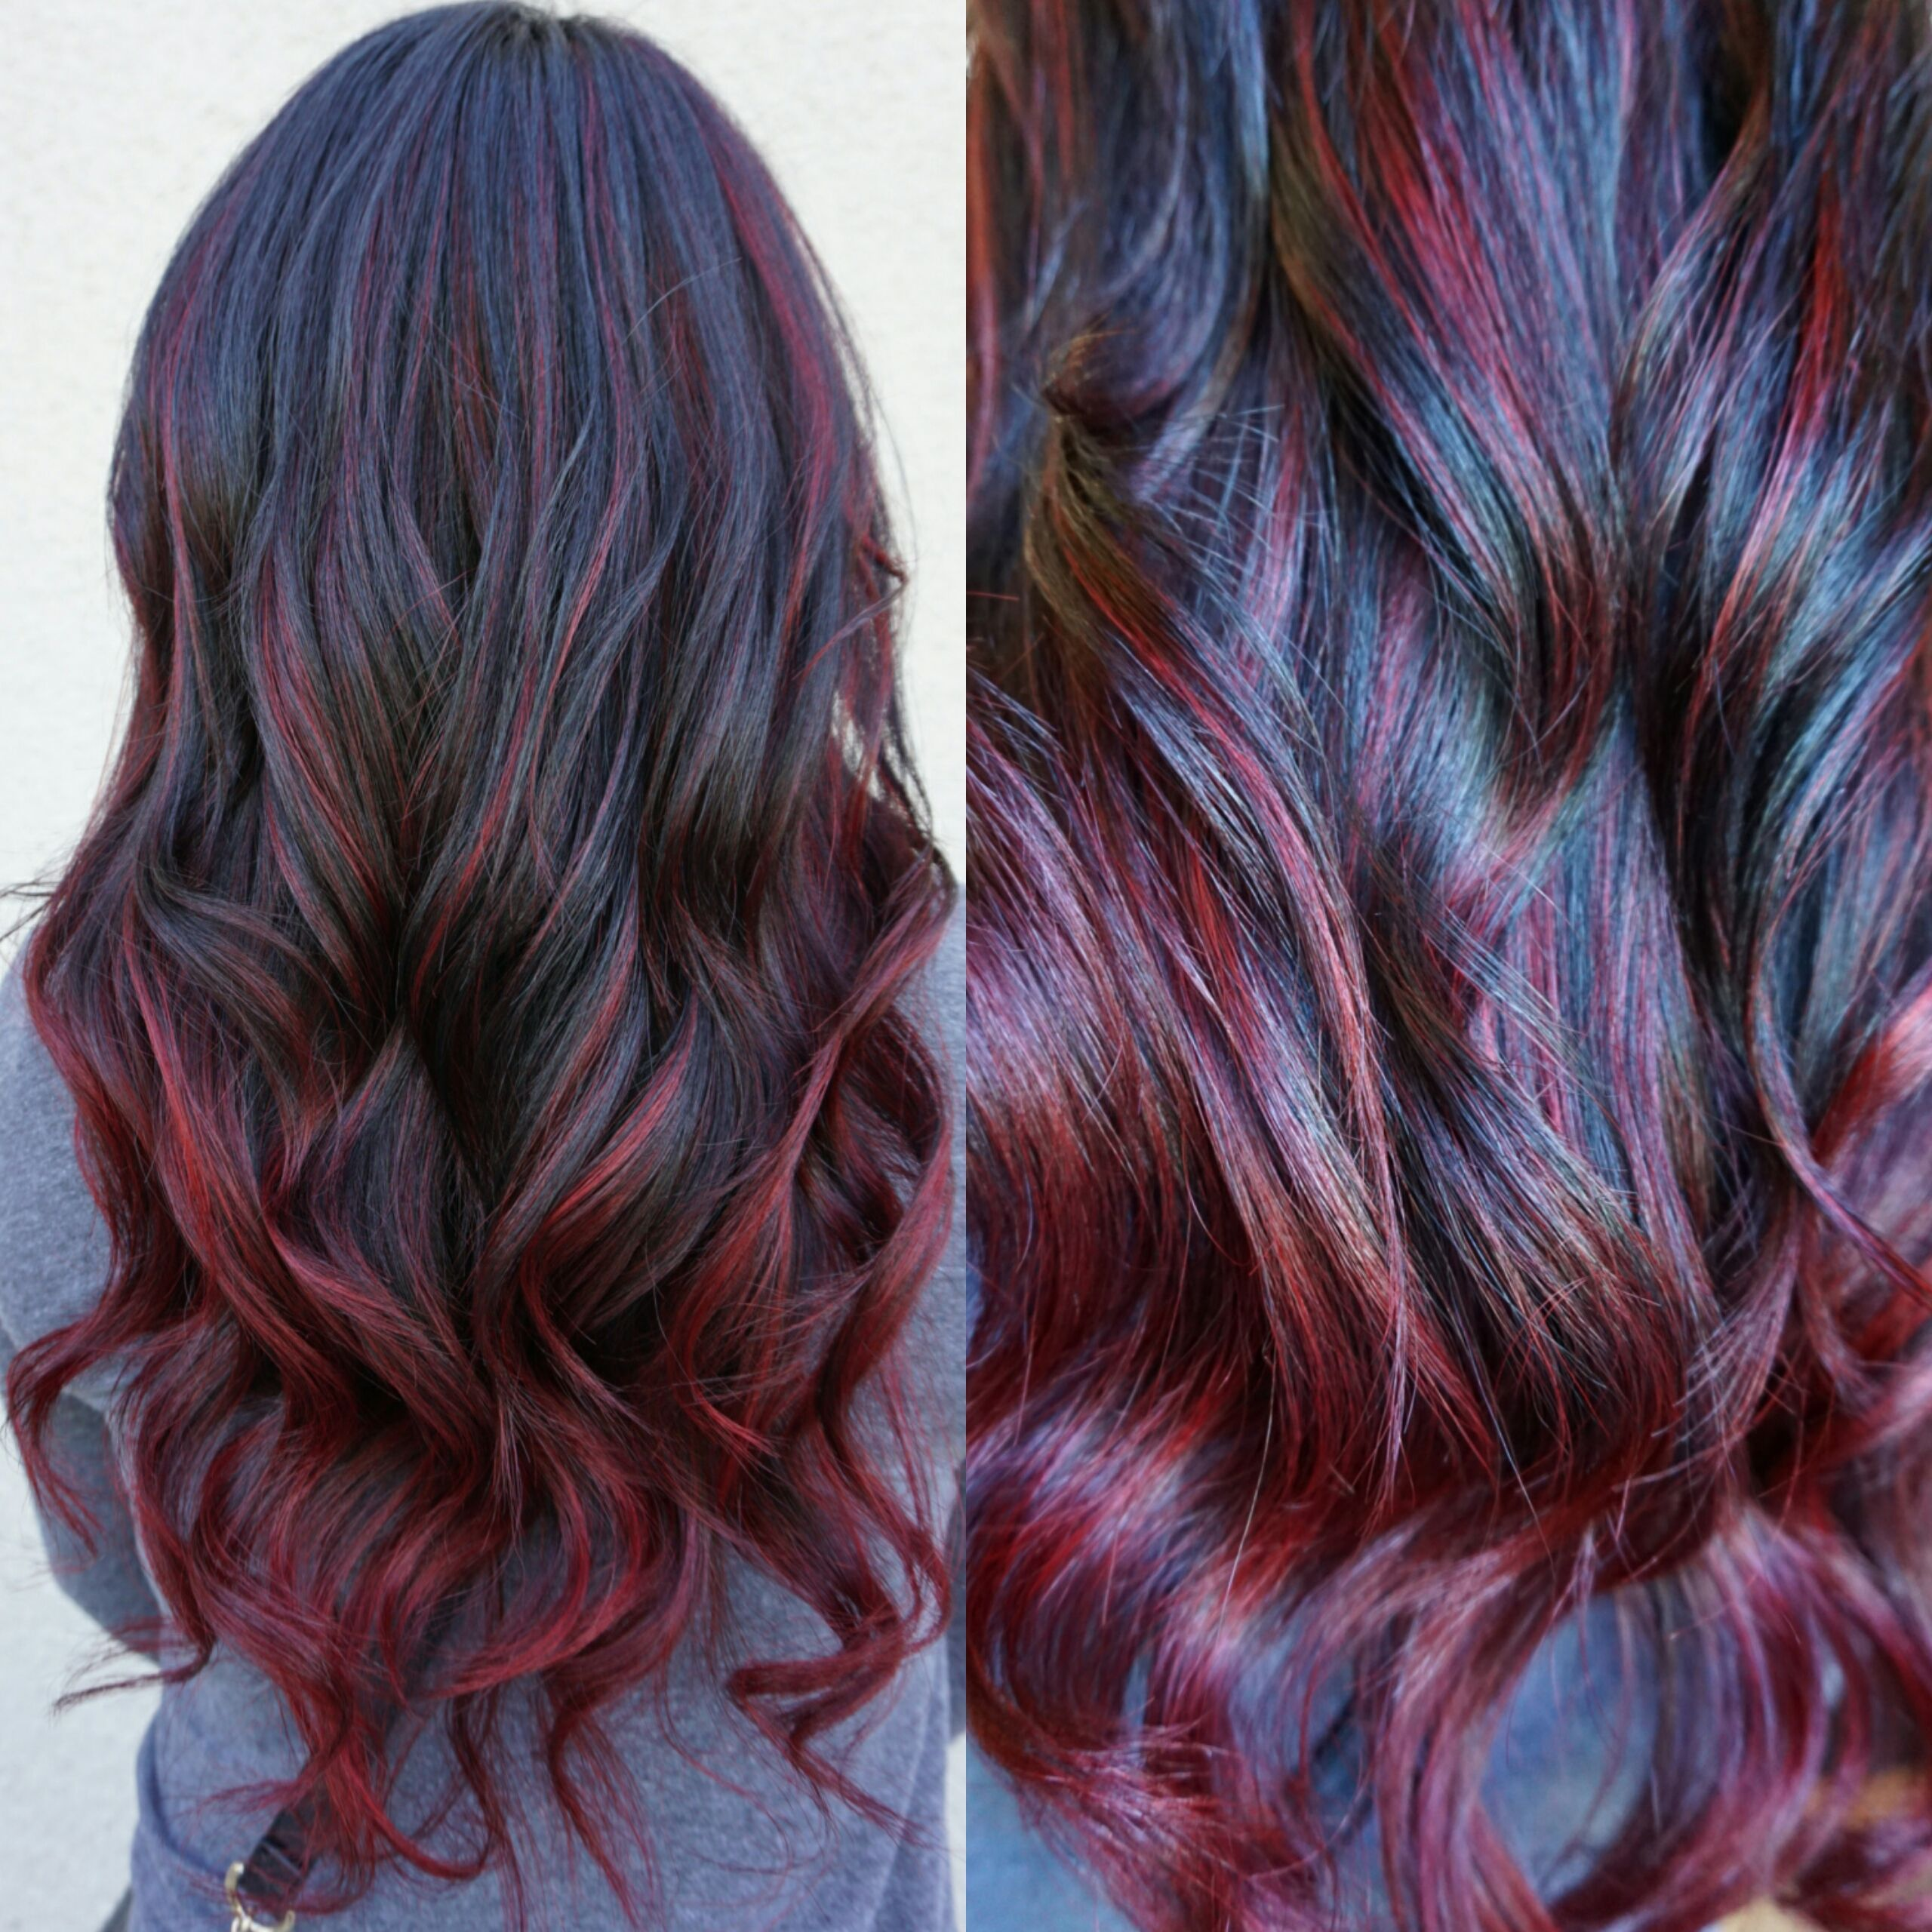 21 amazing dark red hair color ideas bright red highlights dark correction ombre to red sombre career dark hair with redred highlights pmusecretfo Images